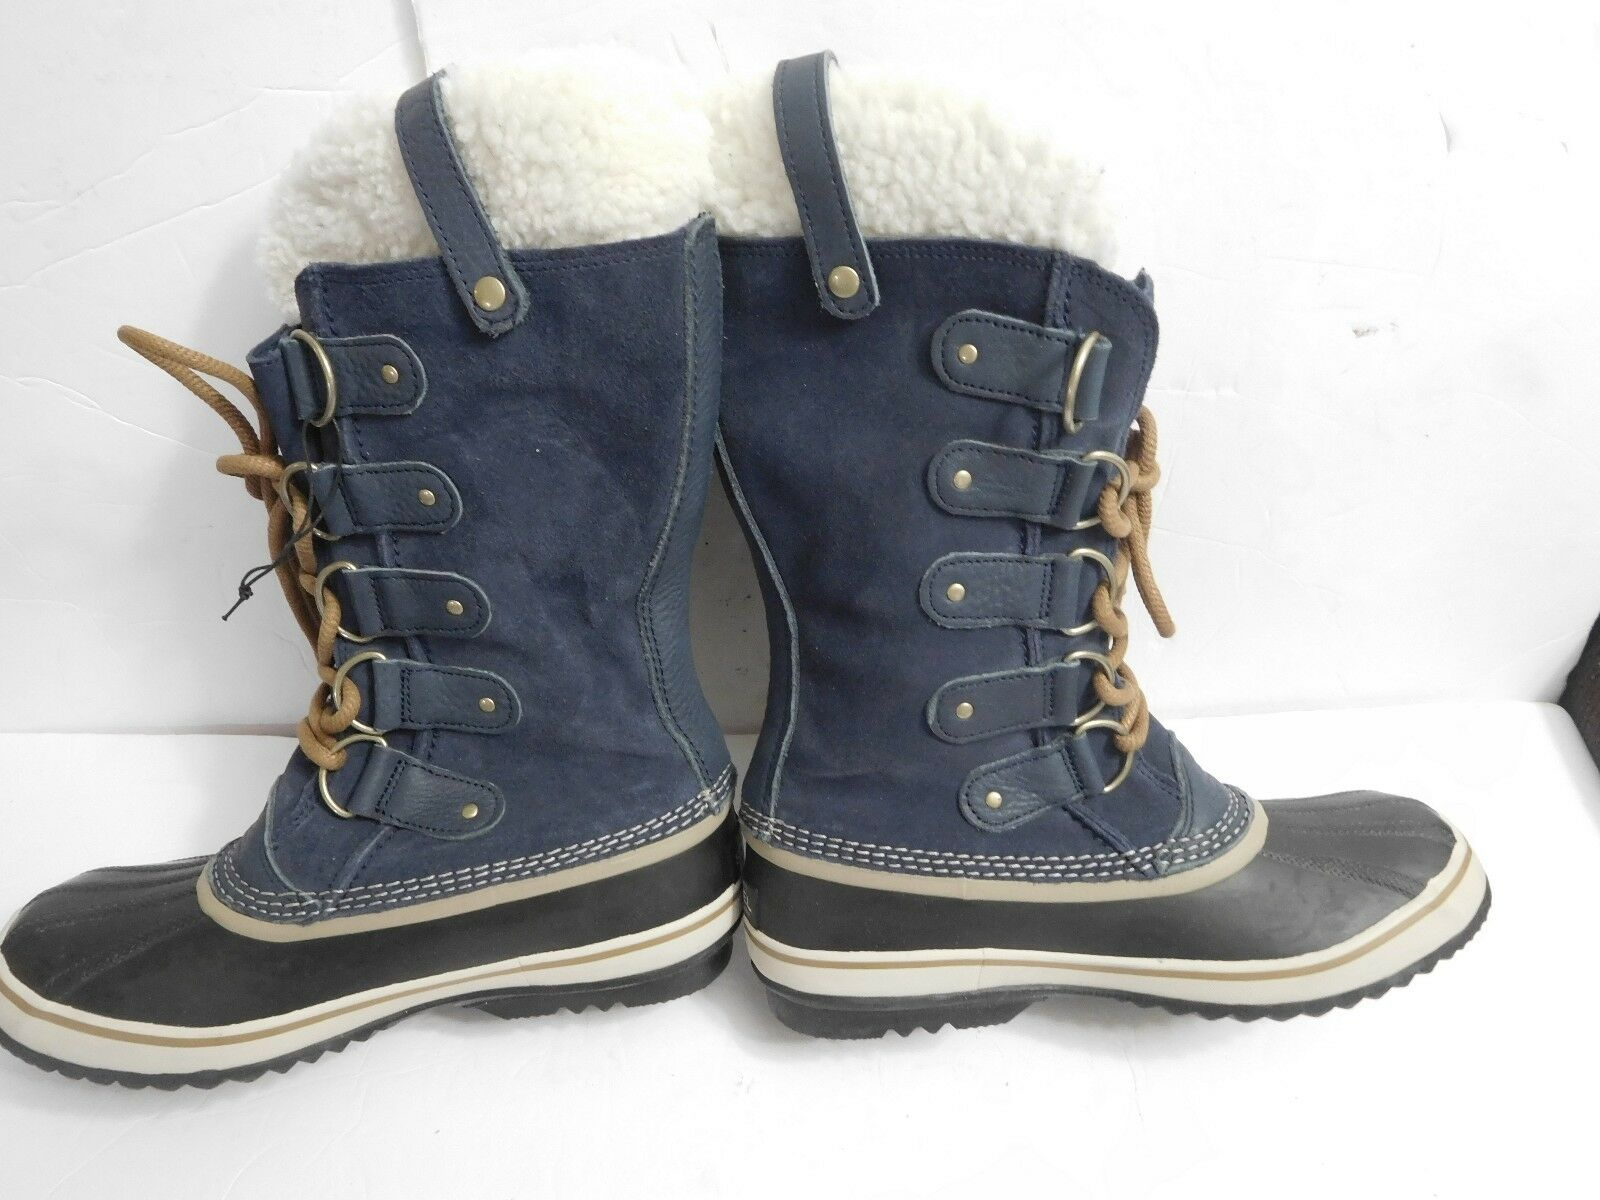 B-202 Women's Joan of Arctic Shearling Boot by Sorel Size 9